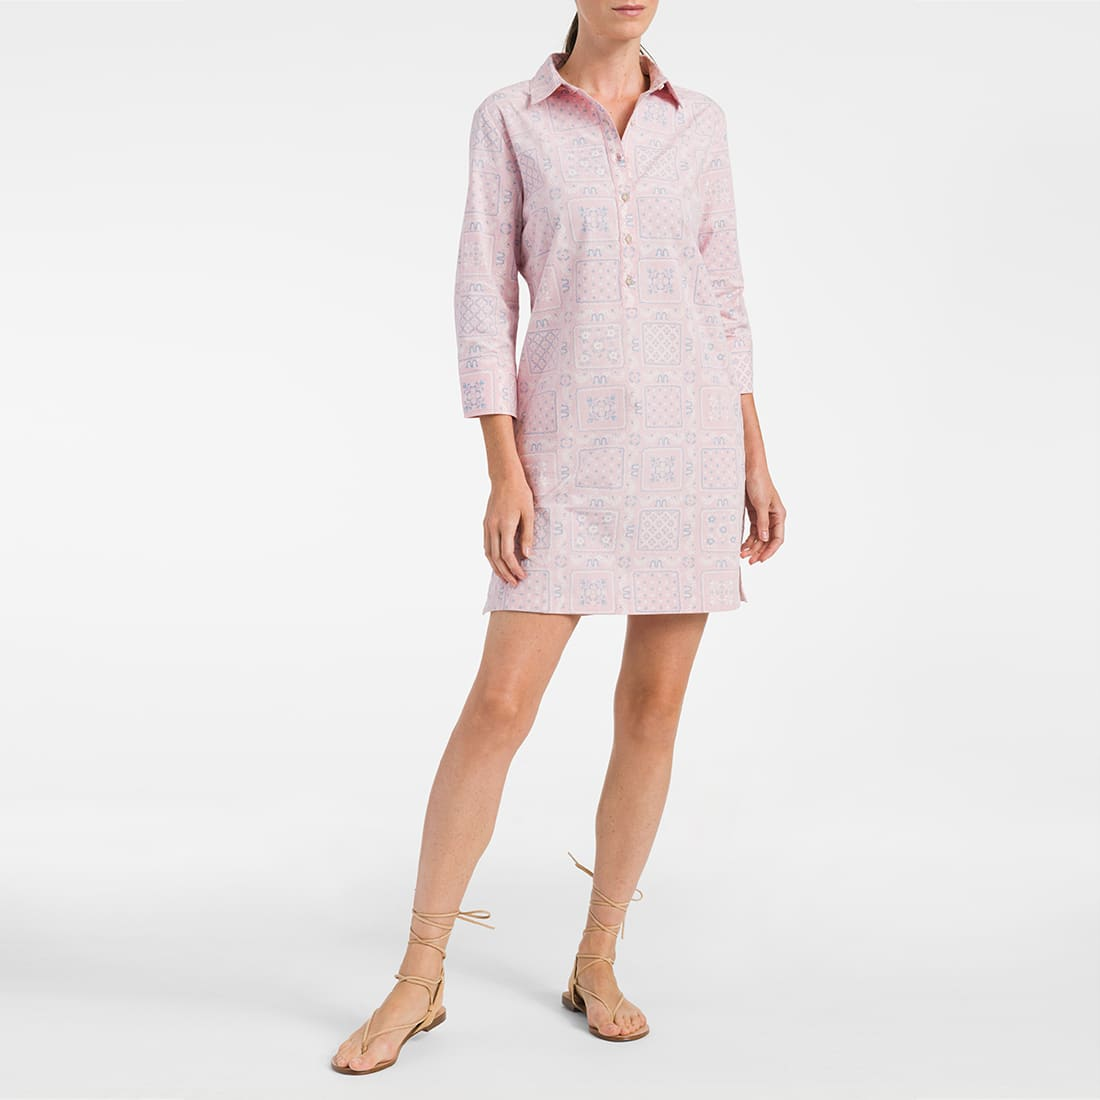 WOMENS SHIRT DRESS In Hawaii, we take care of our own. Thats why weve created a limited edition pink collection for Breast Cancer Awareness Month. A portion of the proceeds benefit the Womens Center at Kapiolani Medical Center. Pink; its the color of hope. Fit Guide XS S M L XL Size Comparison 4 6 8 10 12 Bust 32-33 1/2 34-35 1/2 36-37 1/2 38-39 1/2 40-41 1/2 Waist 27 28 29 30 31-31 1/2 Hip 37 38 39 40 41-41 1/2 Shirt Dress Three Quarter Sleeve Length 36 inches long Includes Hidden Pockets Tahitian Cotton - 100% Cotton Easy care; machine washable Designed in Hawaii. Think Pink Dress, Cotton, For Girls, L, From Reyn Spooner